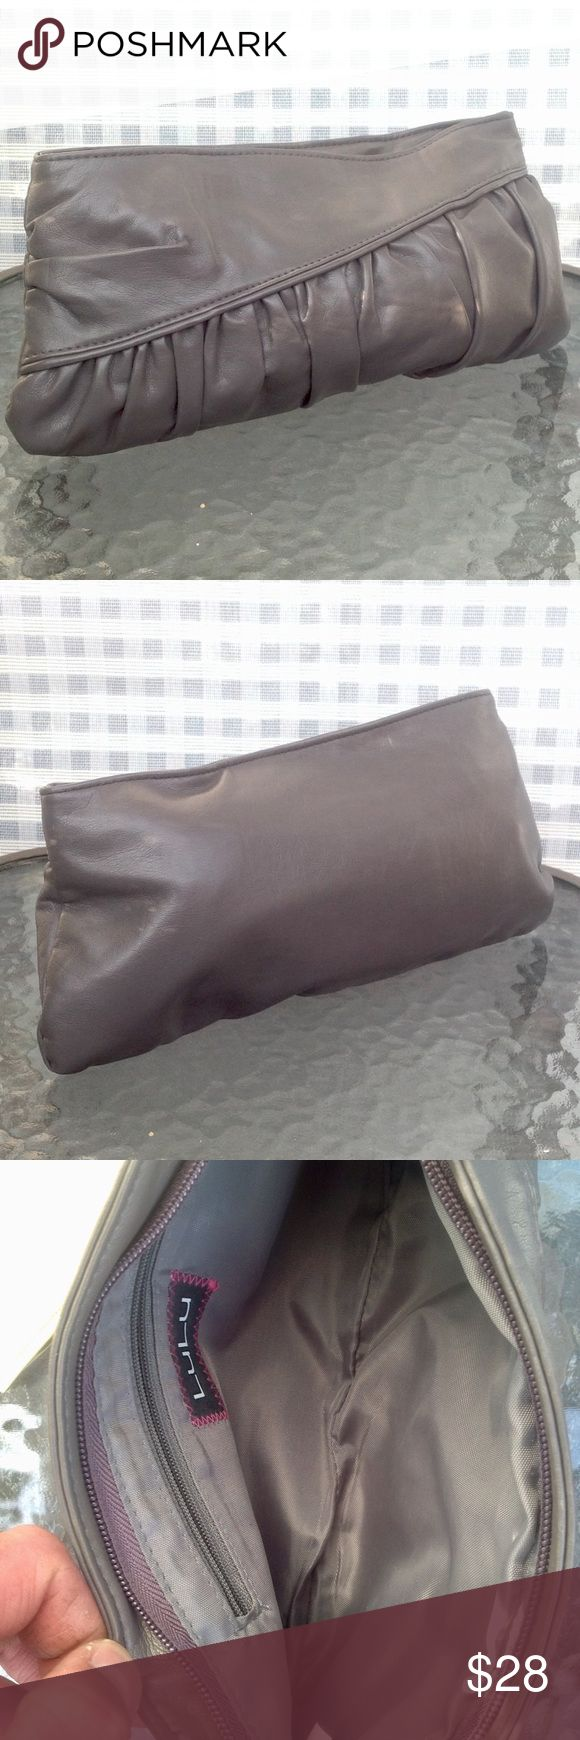 🎀STUNNING GREY CLUTCH IN EUC BY LULU🎀 🎀STUNNING GREY CLUTCH IN EXCELLENT NEW CONDITION BY LULU🎀 Lulu Bags Clutches & Wristlets